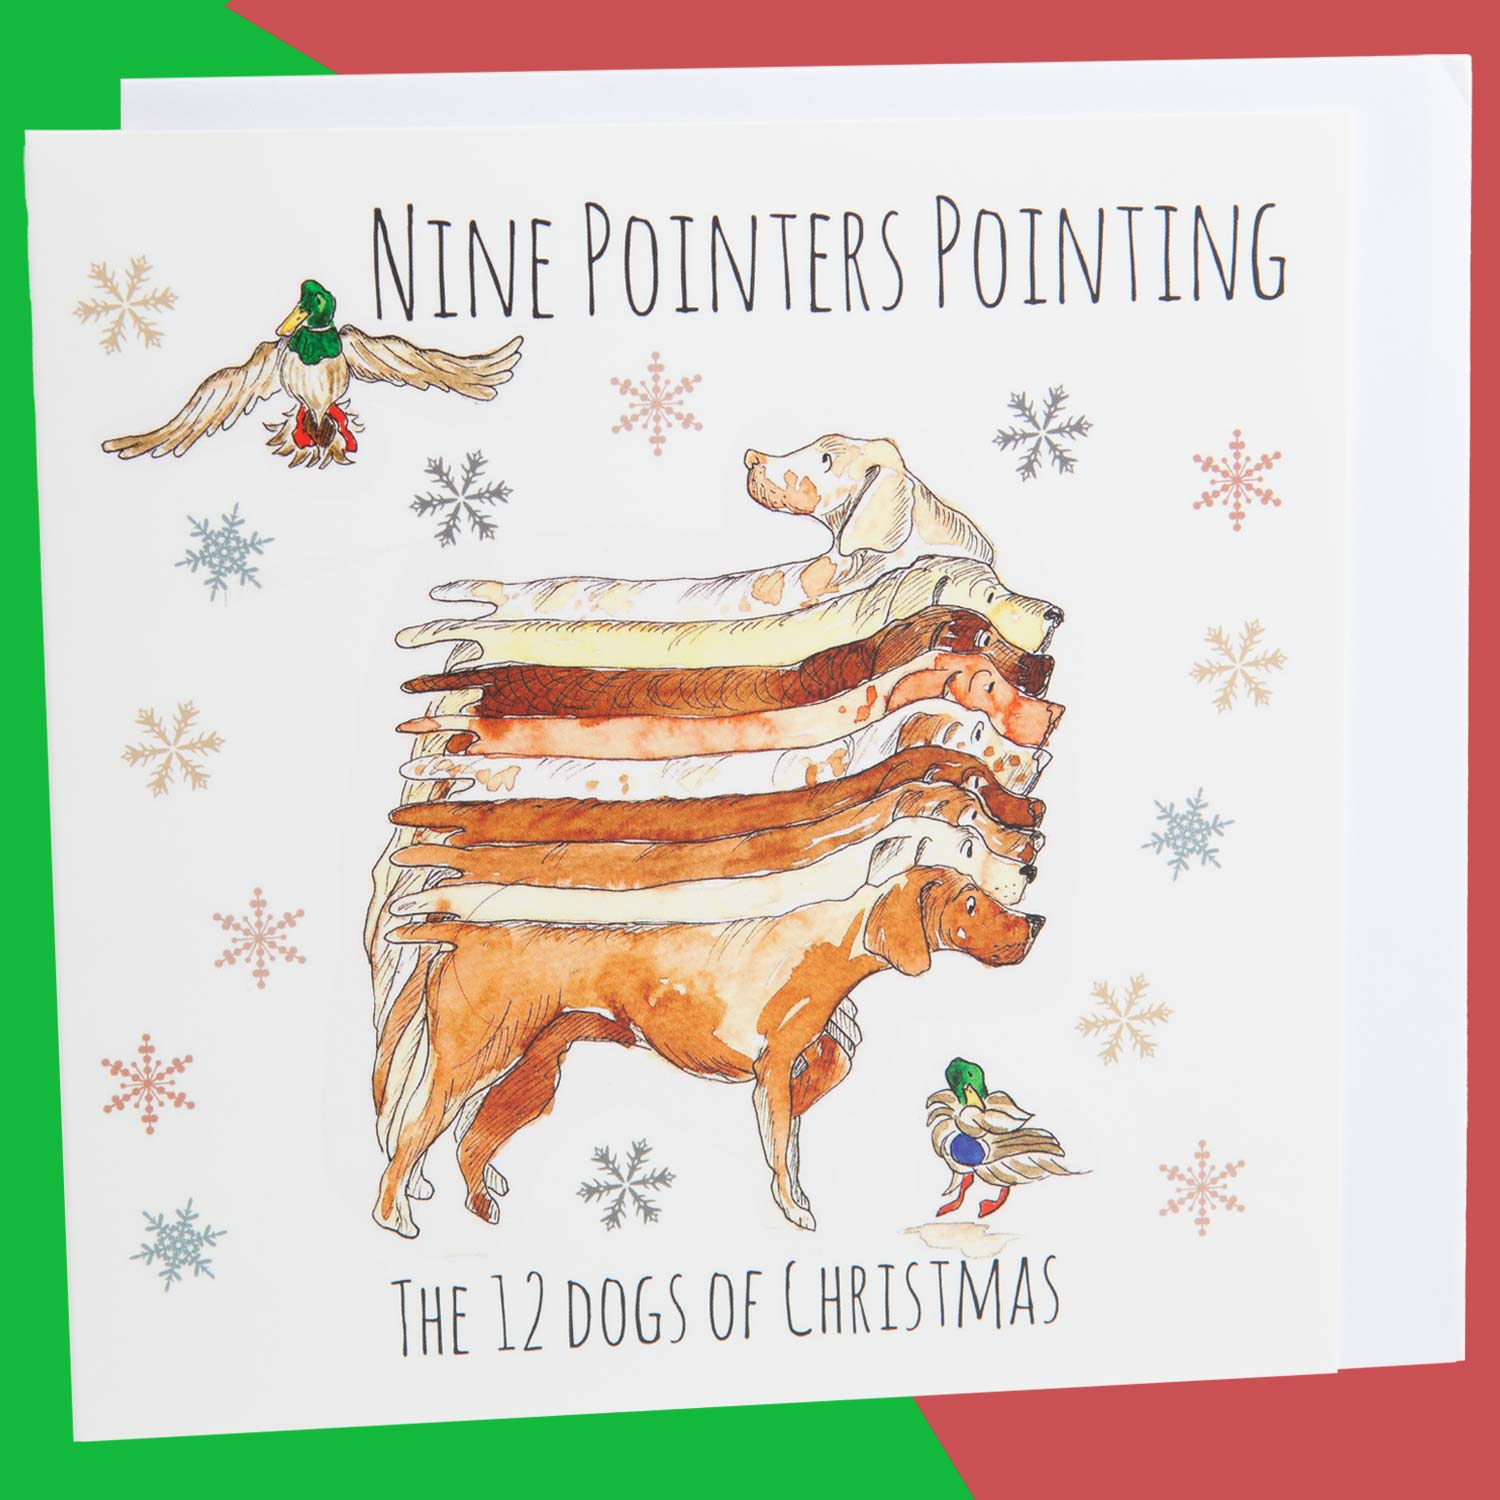 Dog Krazy Gifts - Nine Pointers Pointing - Part of the 12 Dogs of Christmas card collection available from DogKrazyGifts.co.uk